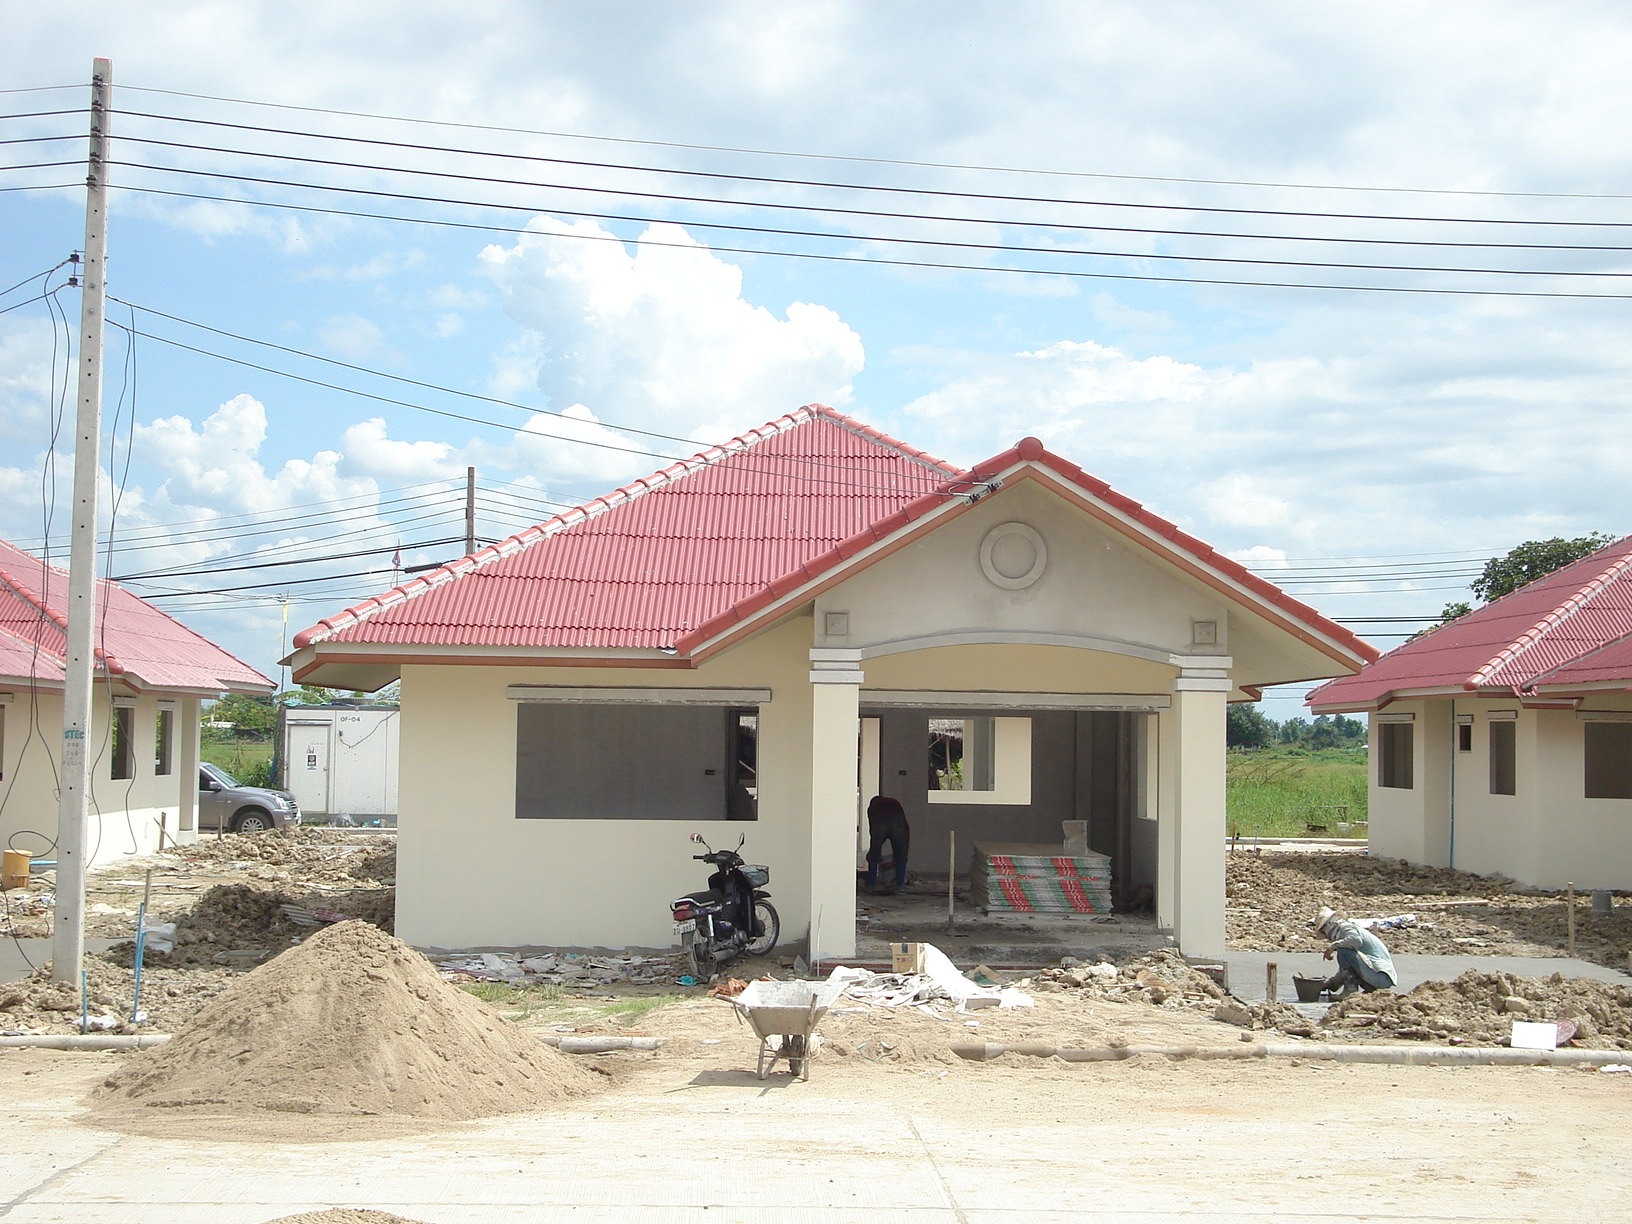 File under construction thai modern wikimedia for House building contractors